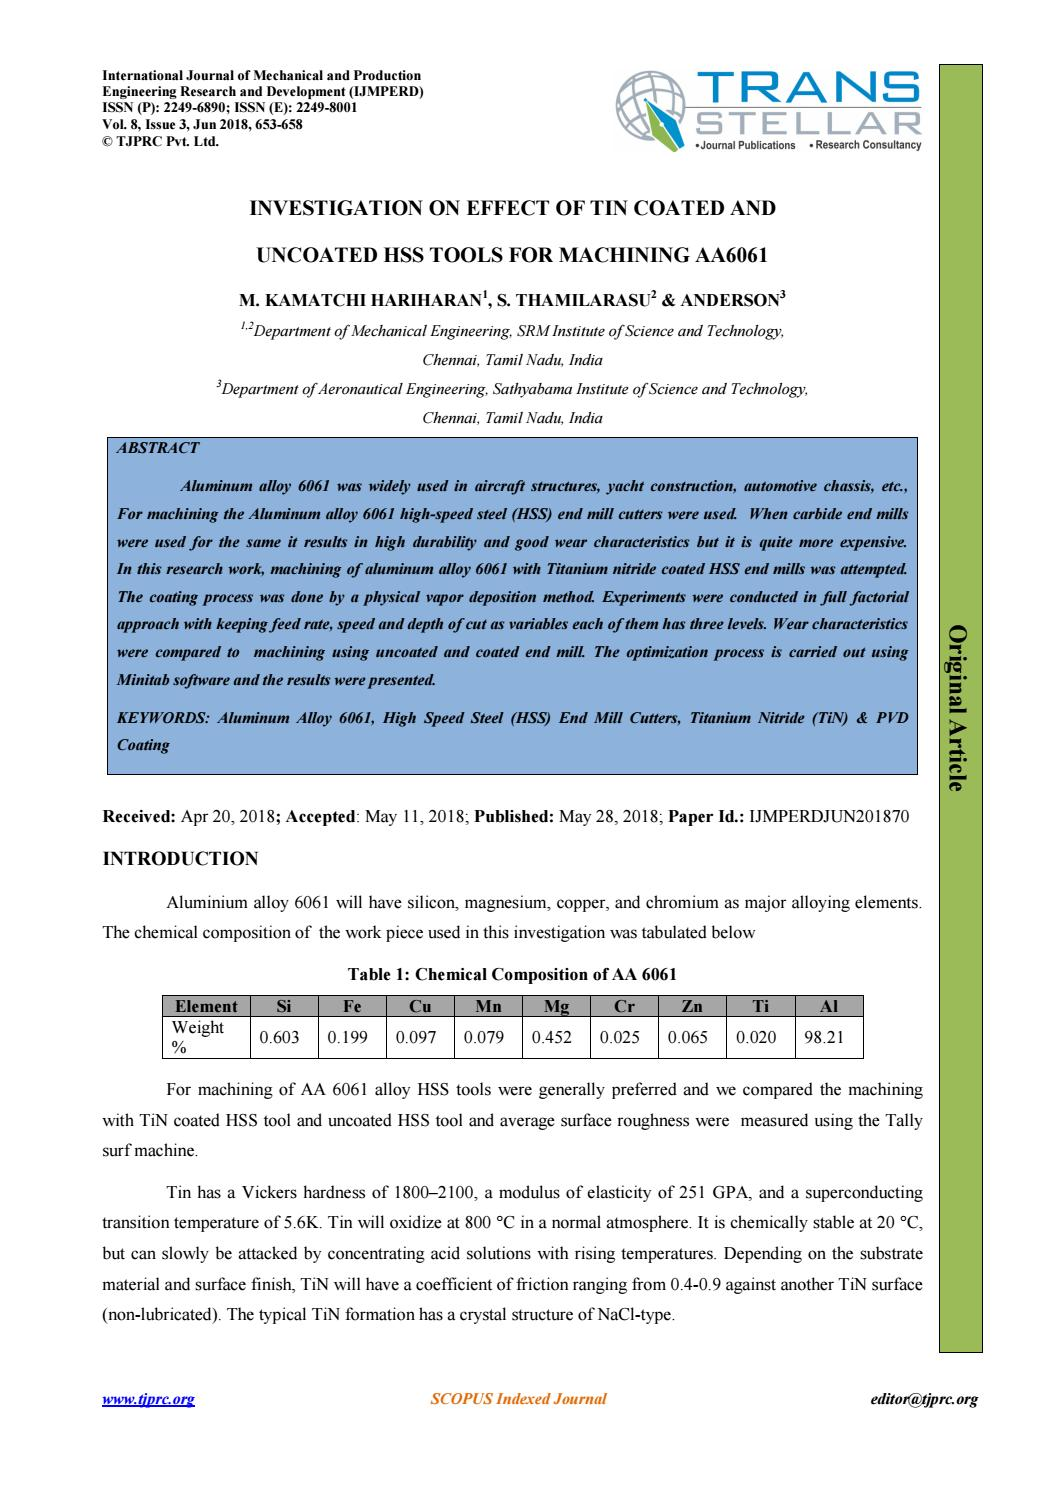 INVESTIGATION ON EFFECT OF TIN COATED AND UNCOATED HSS TOOLS